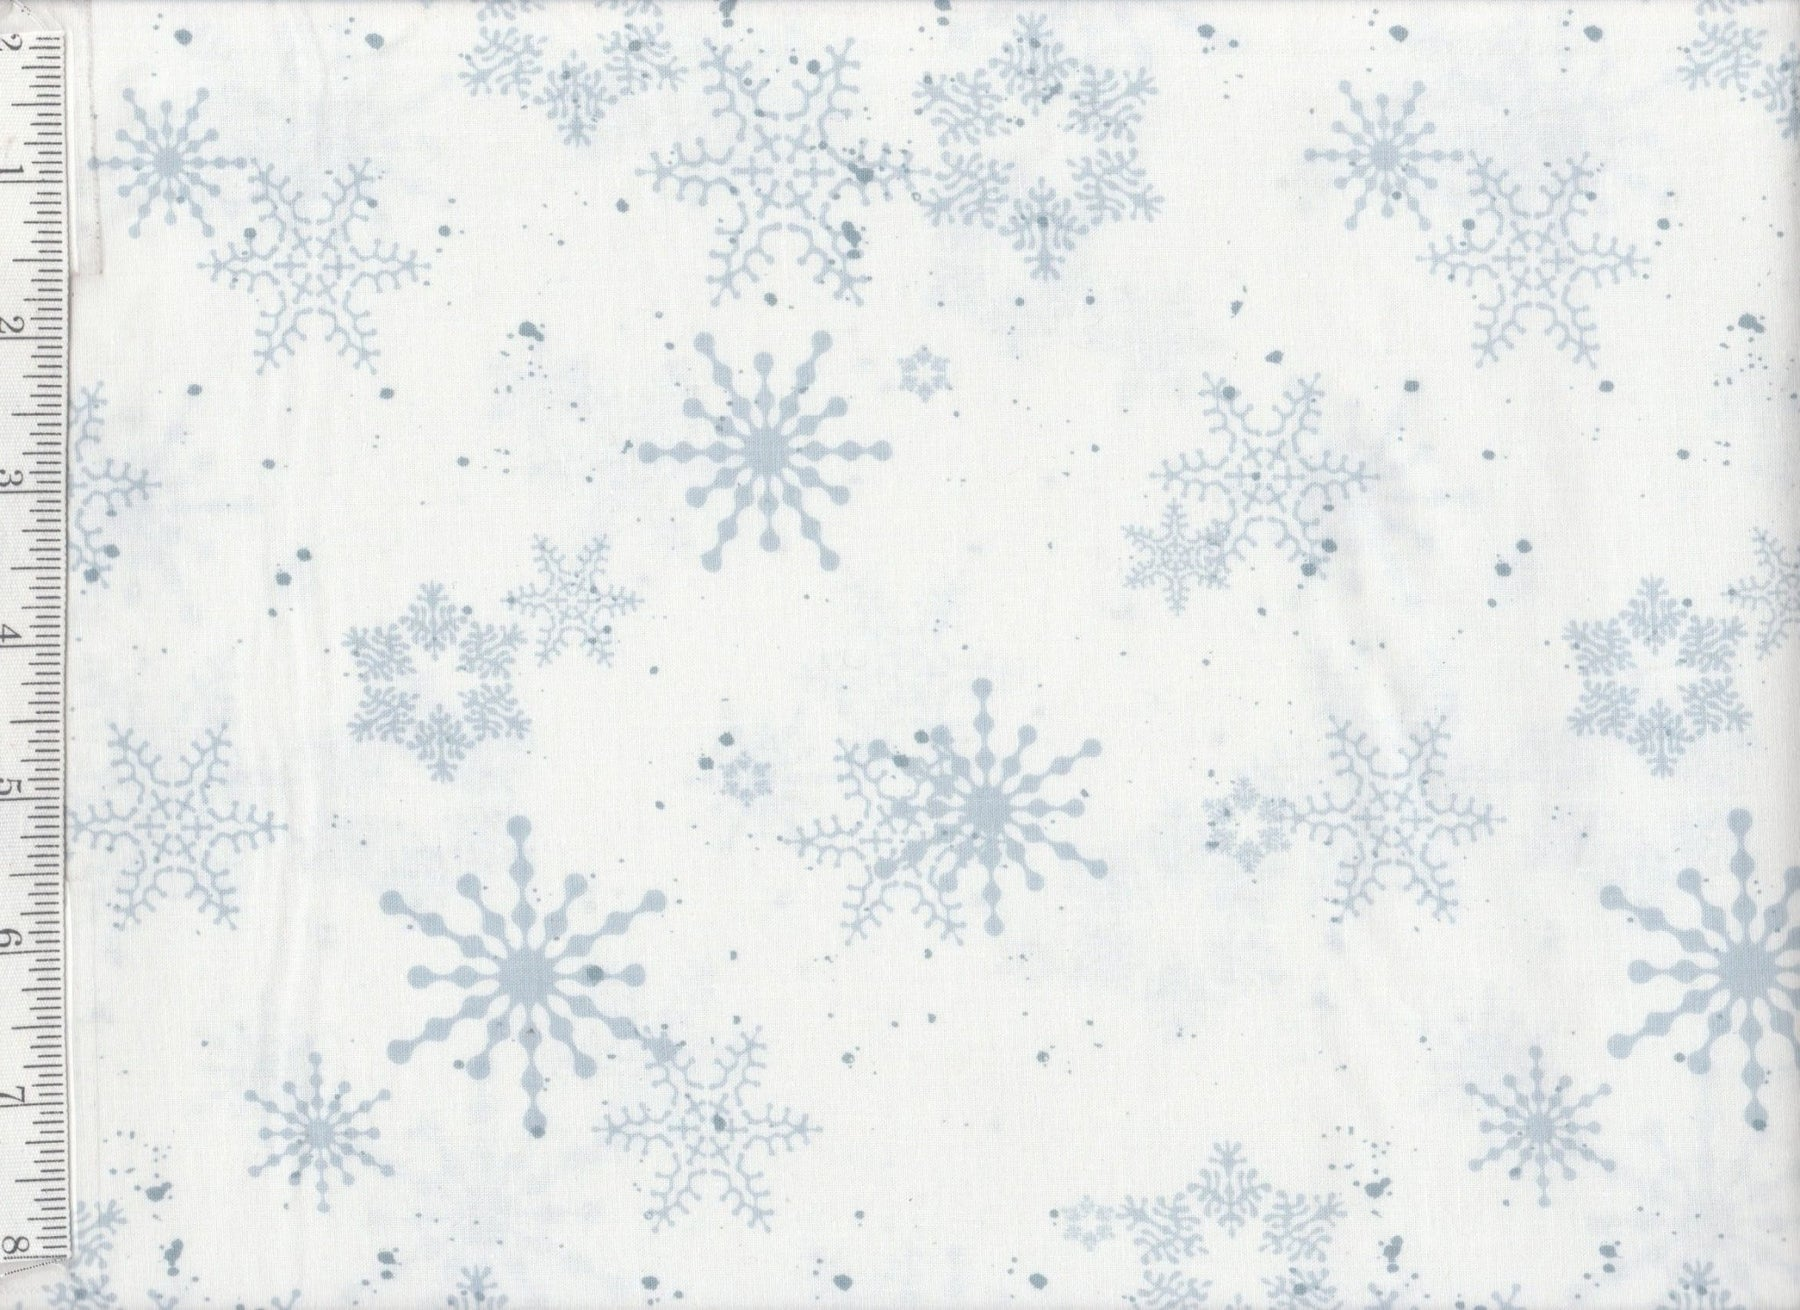 Creature Comforts - per yard - Clothworks - Barb Tourtillotte - Snowflakes on White - RebsFabStash